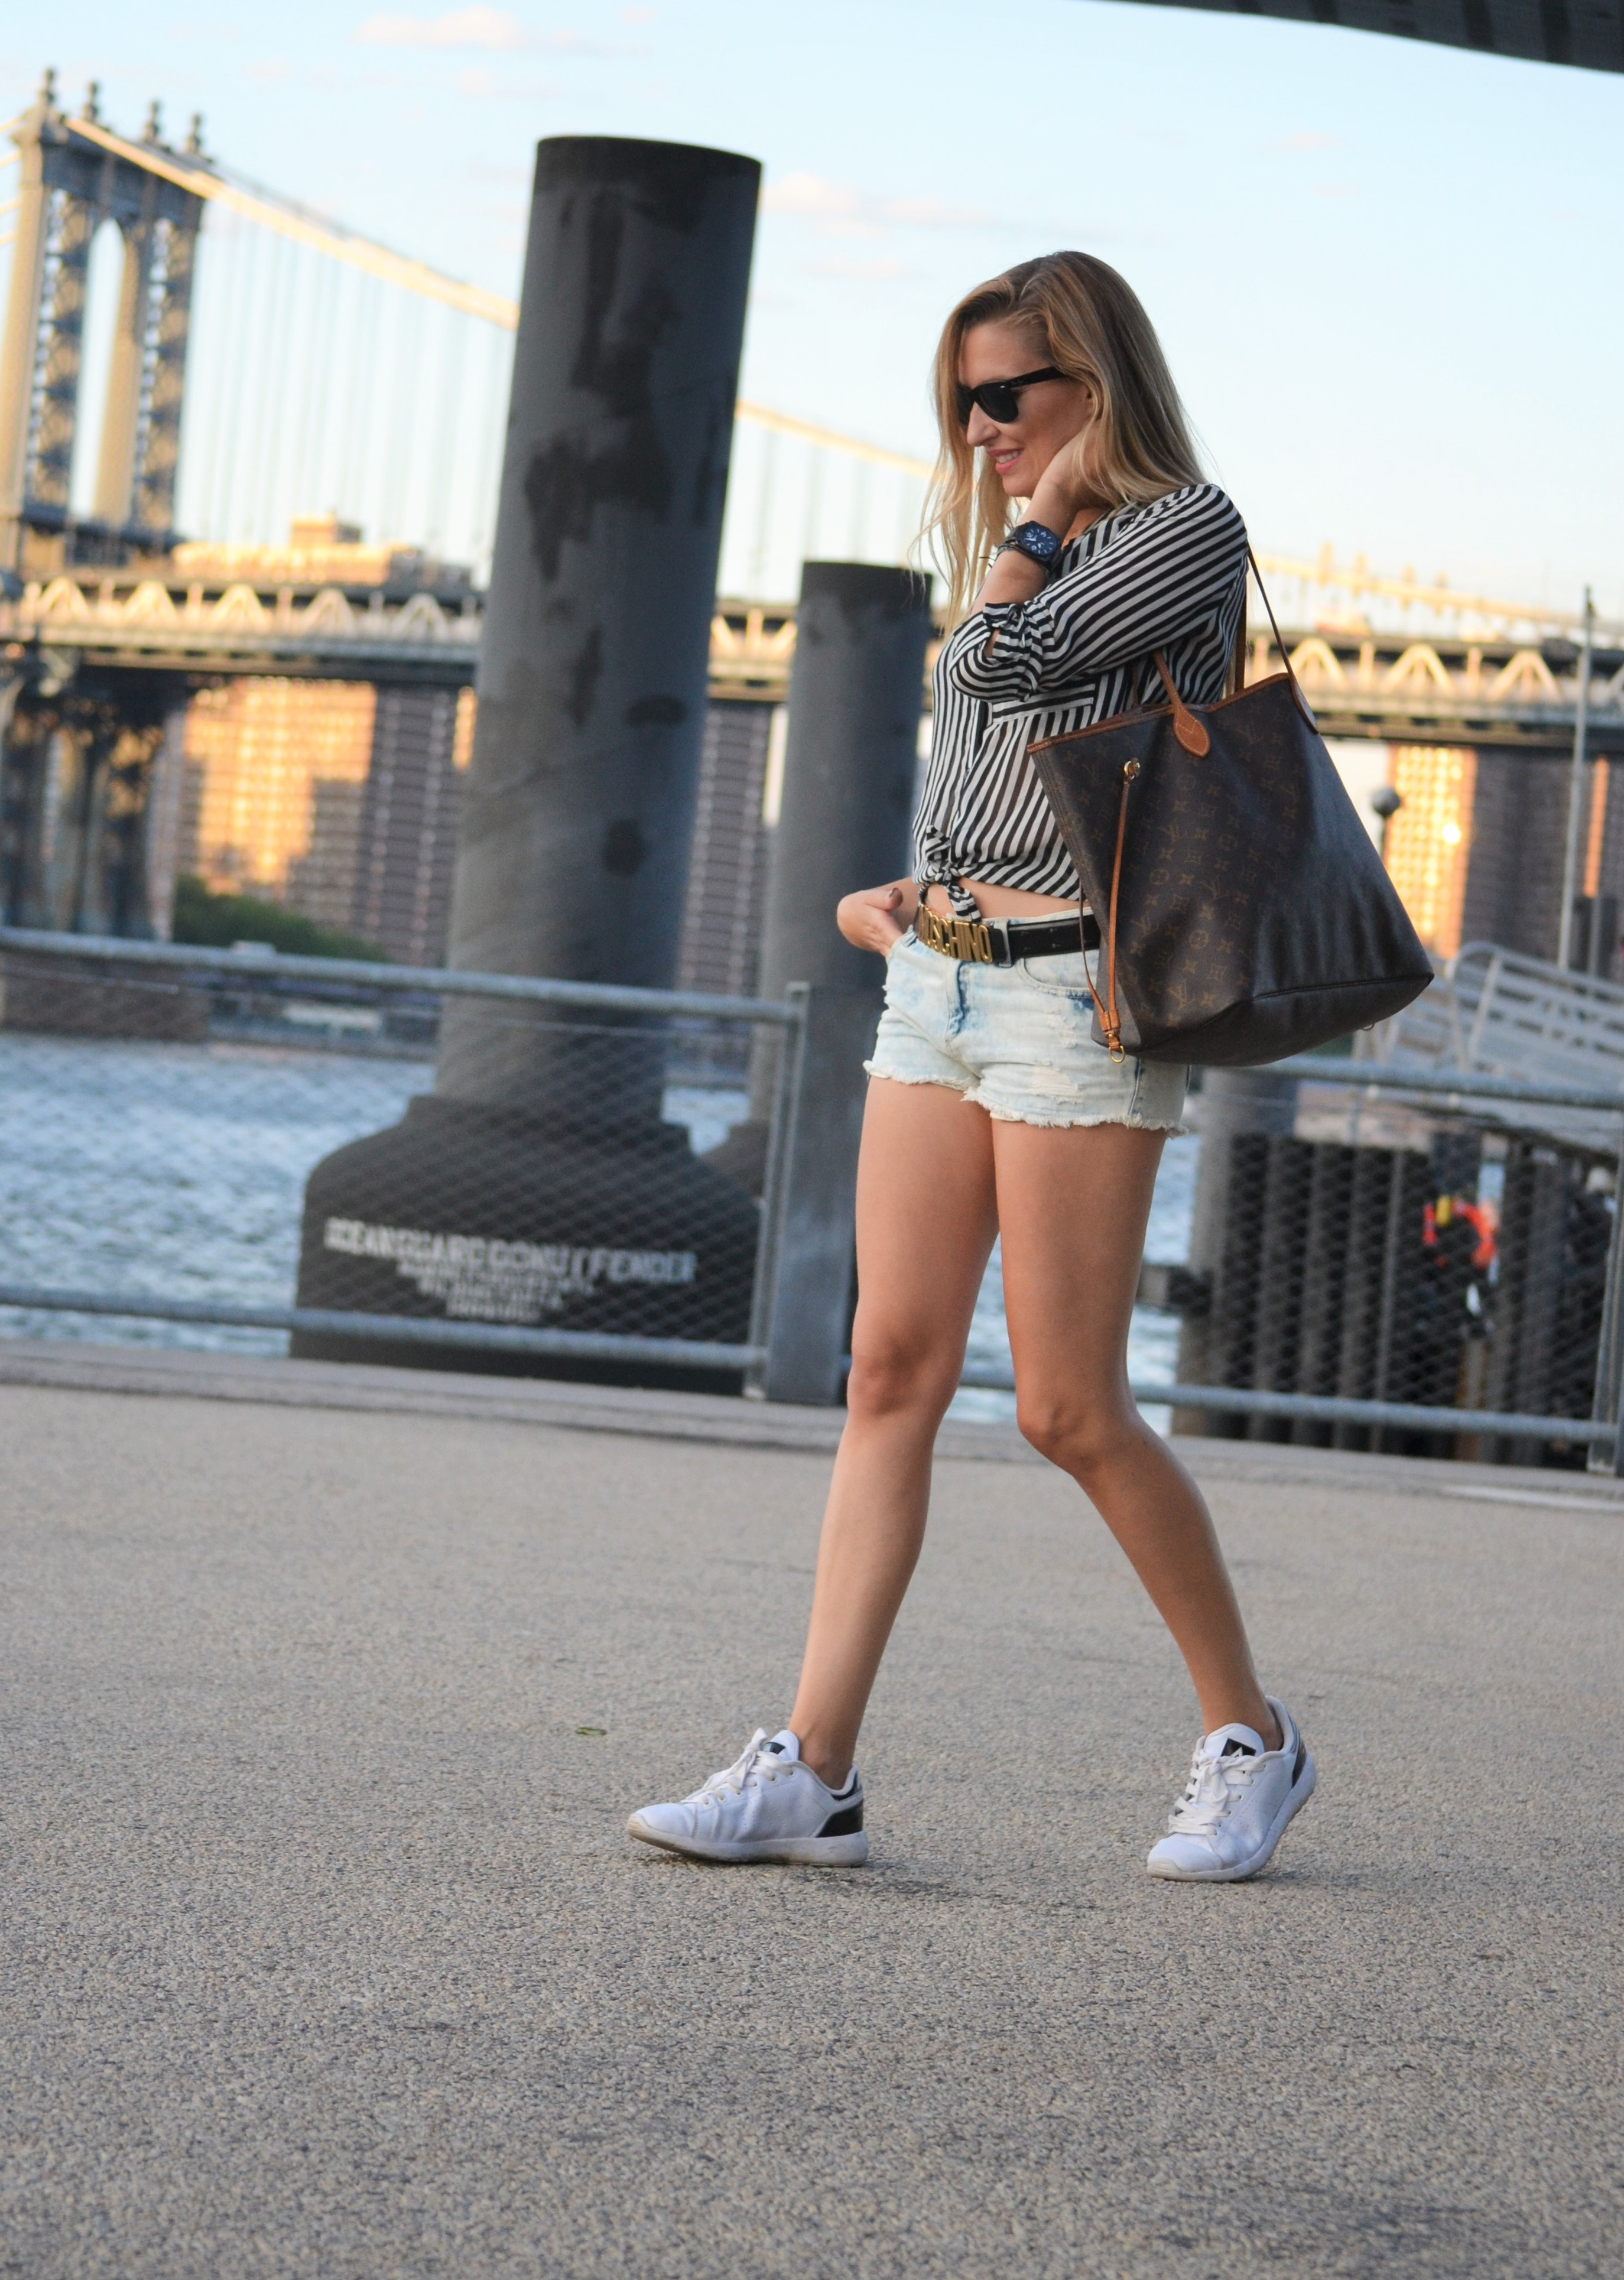 Dumbo_Brooklyn_Louis_Vuitton_Lara_Martin_Gilarranz_Bymyheels (6)